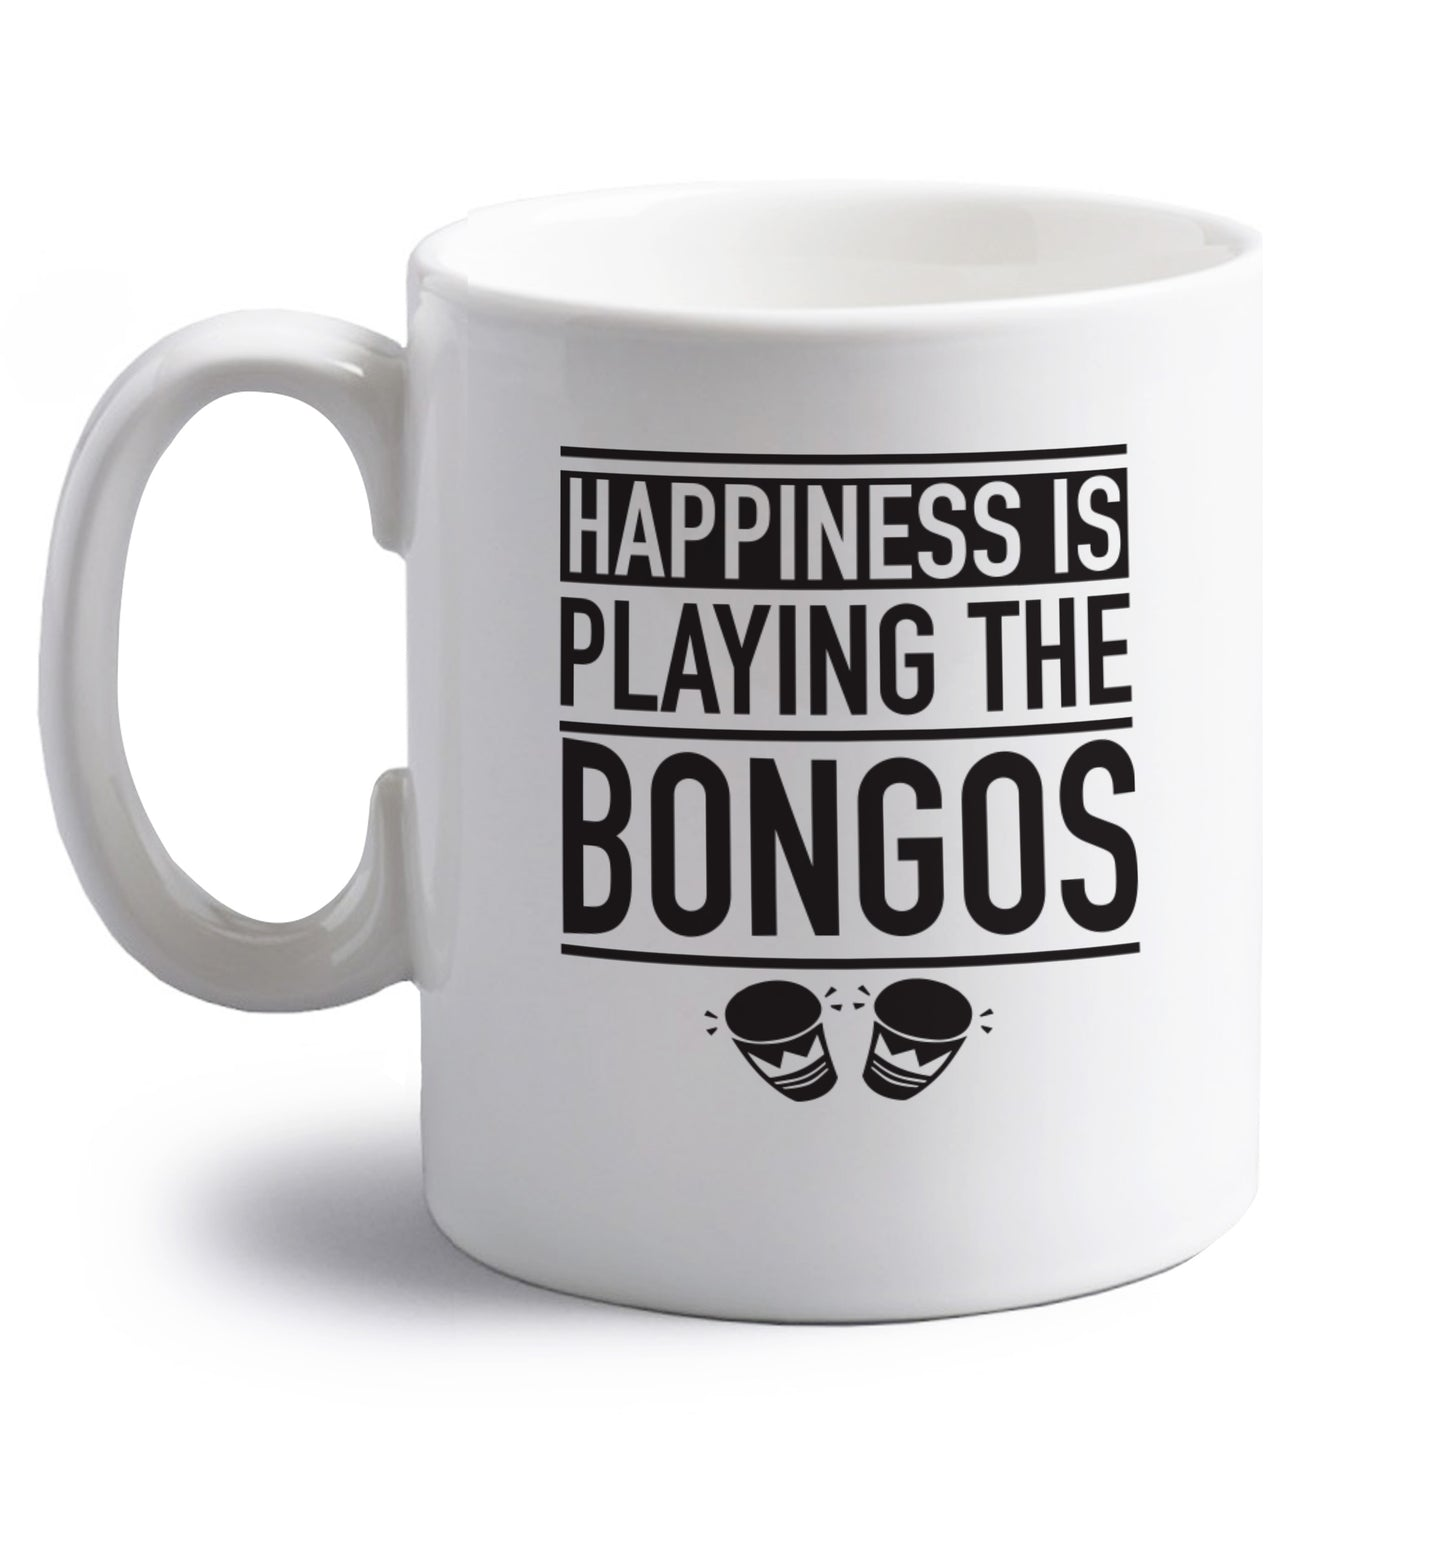 Happiness is playing the bongos right handed white ceramic mug